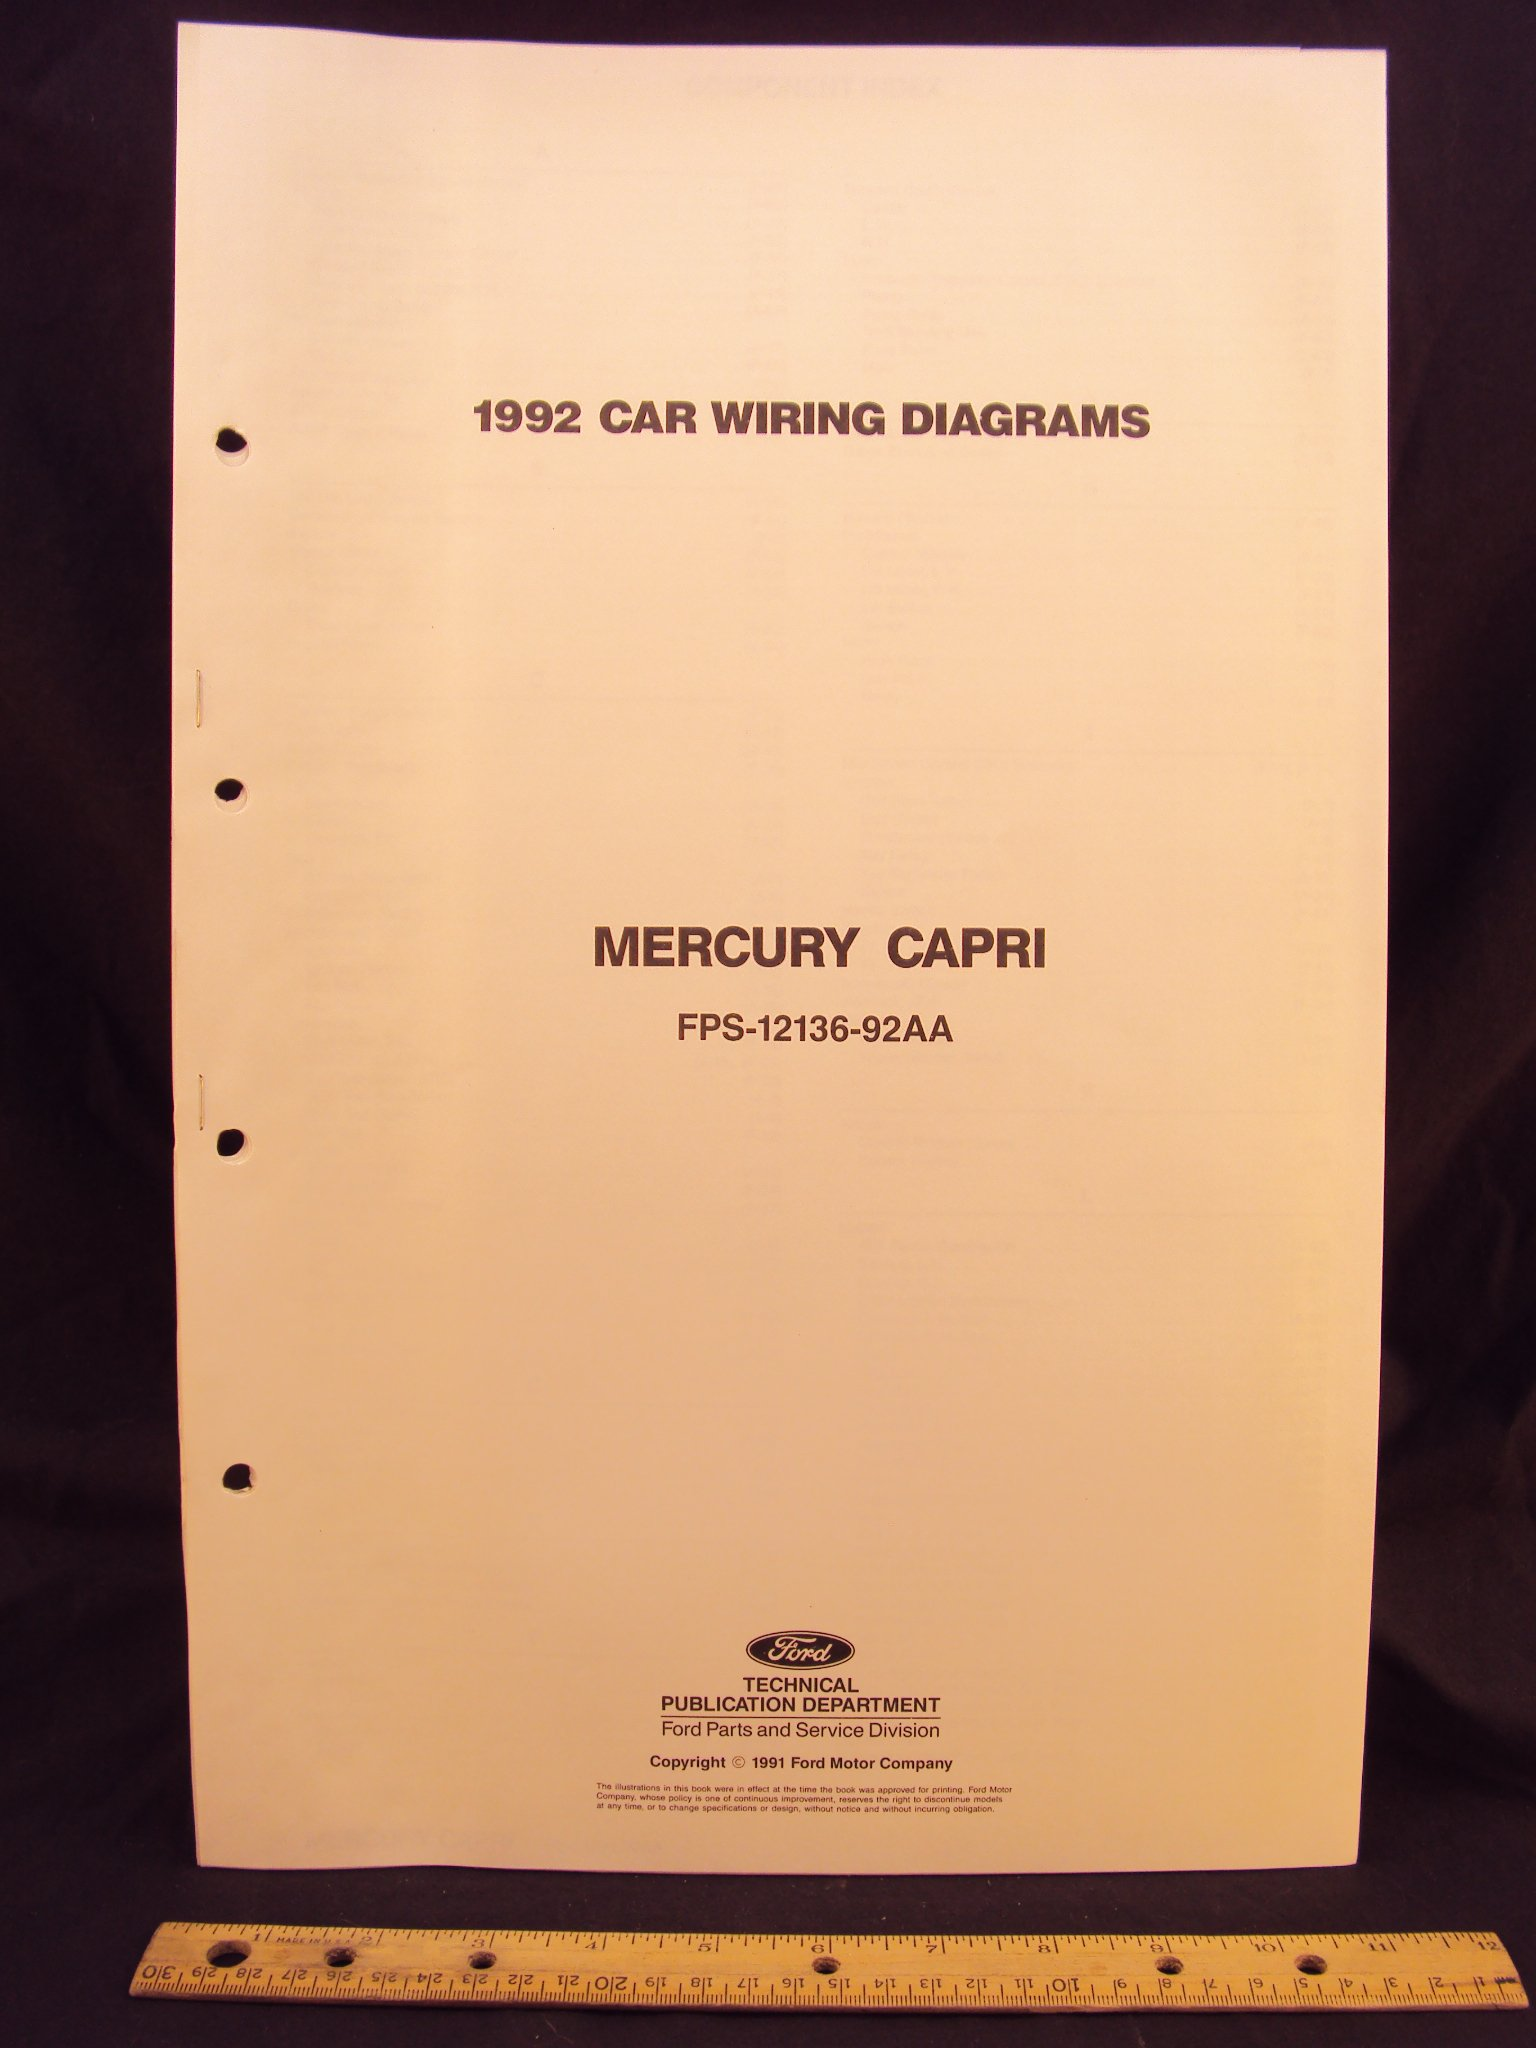 92 Mercury Capri Wiring Diagram Electrical Diagrams Fig 2 1979 Mustang And 1992 Schematics Ford Bayliner